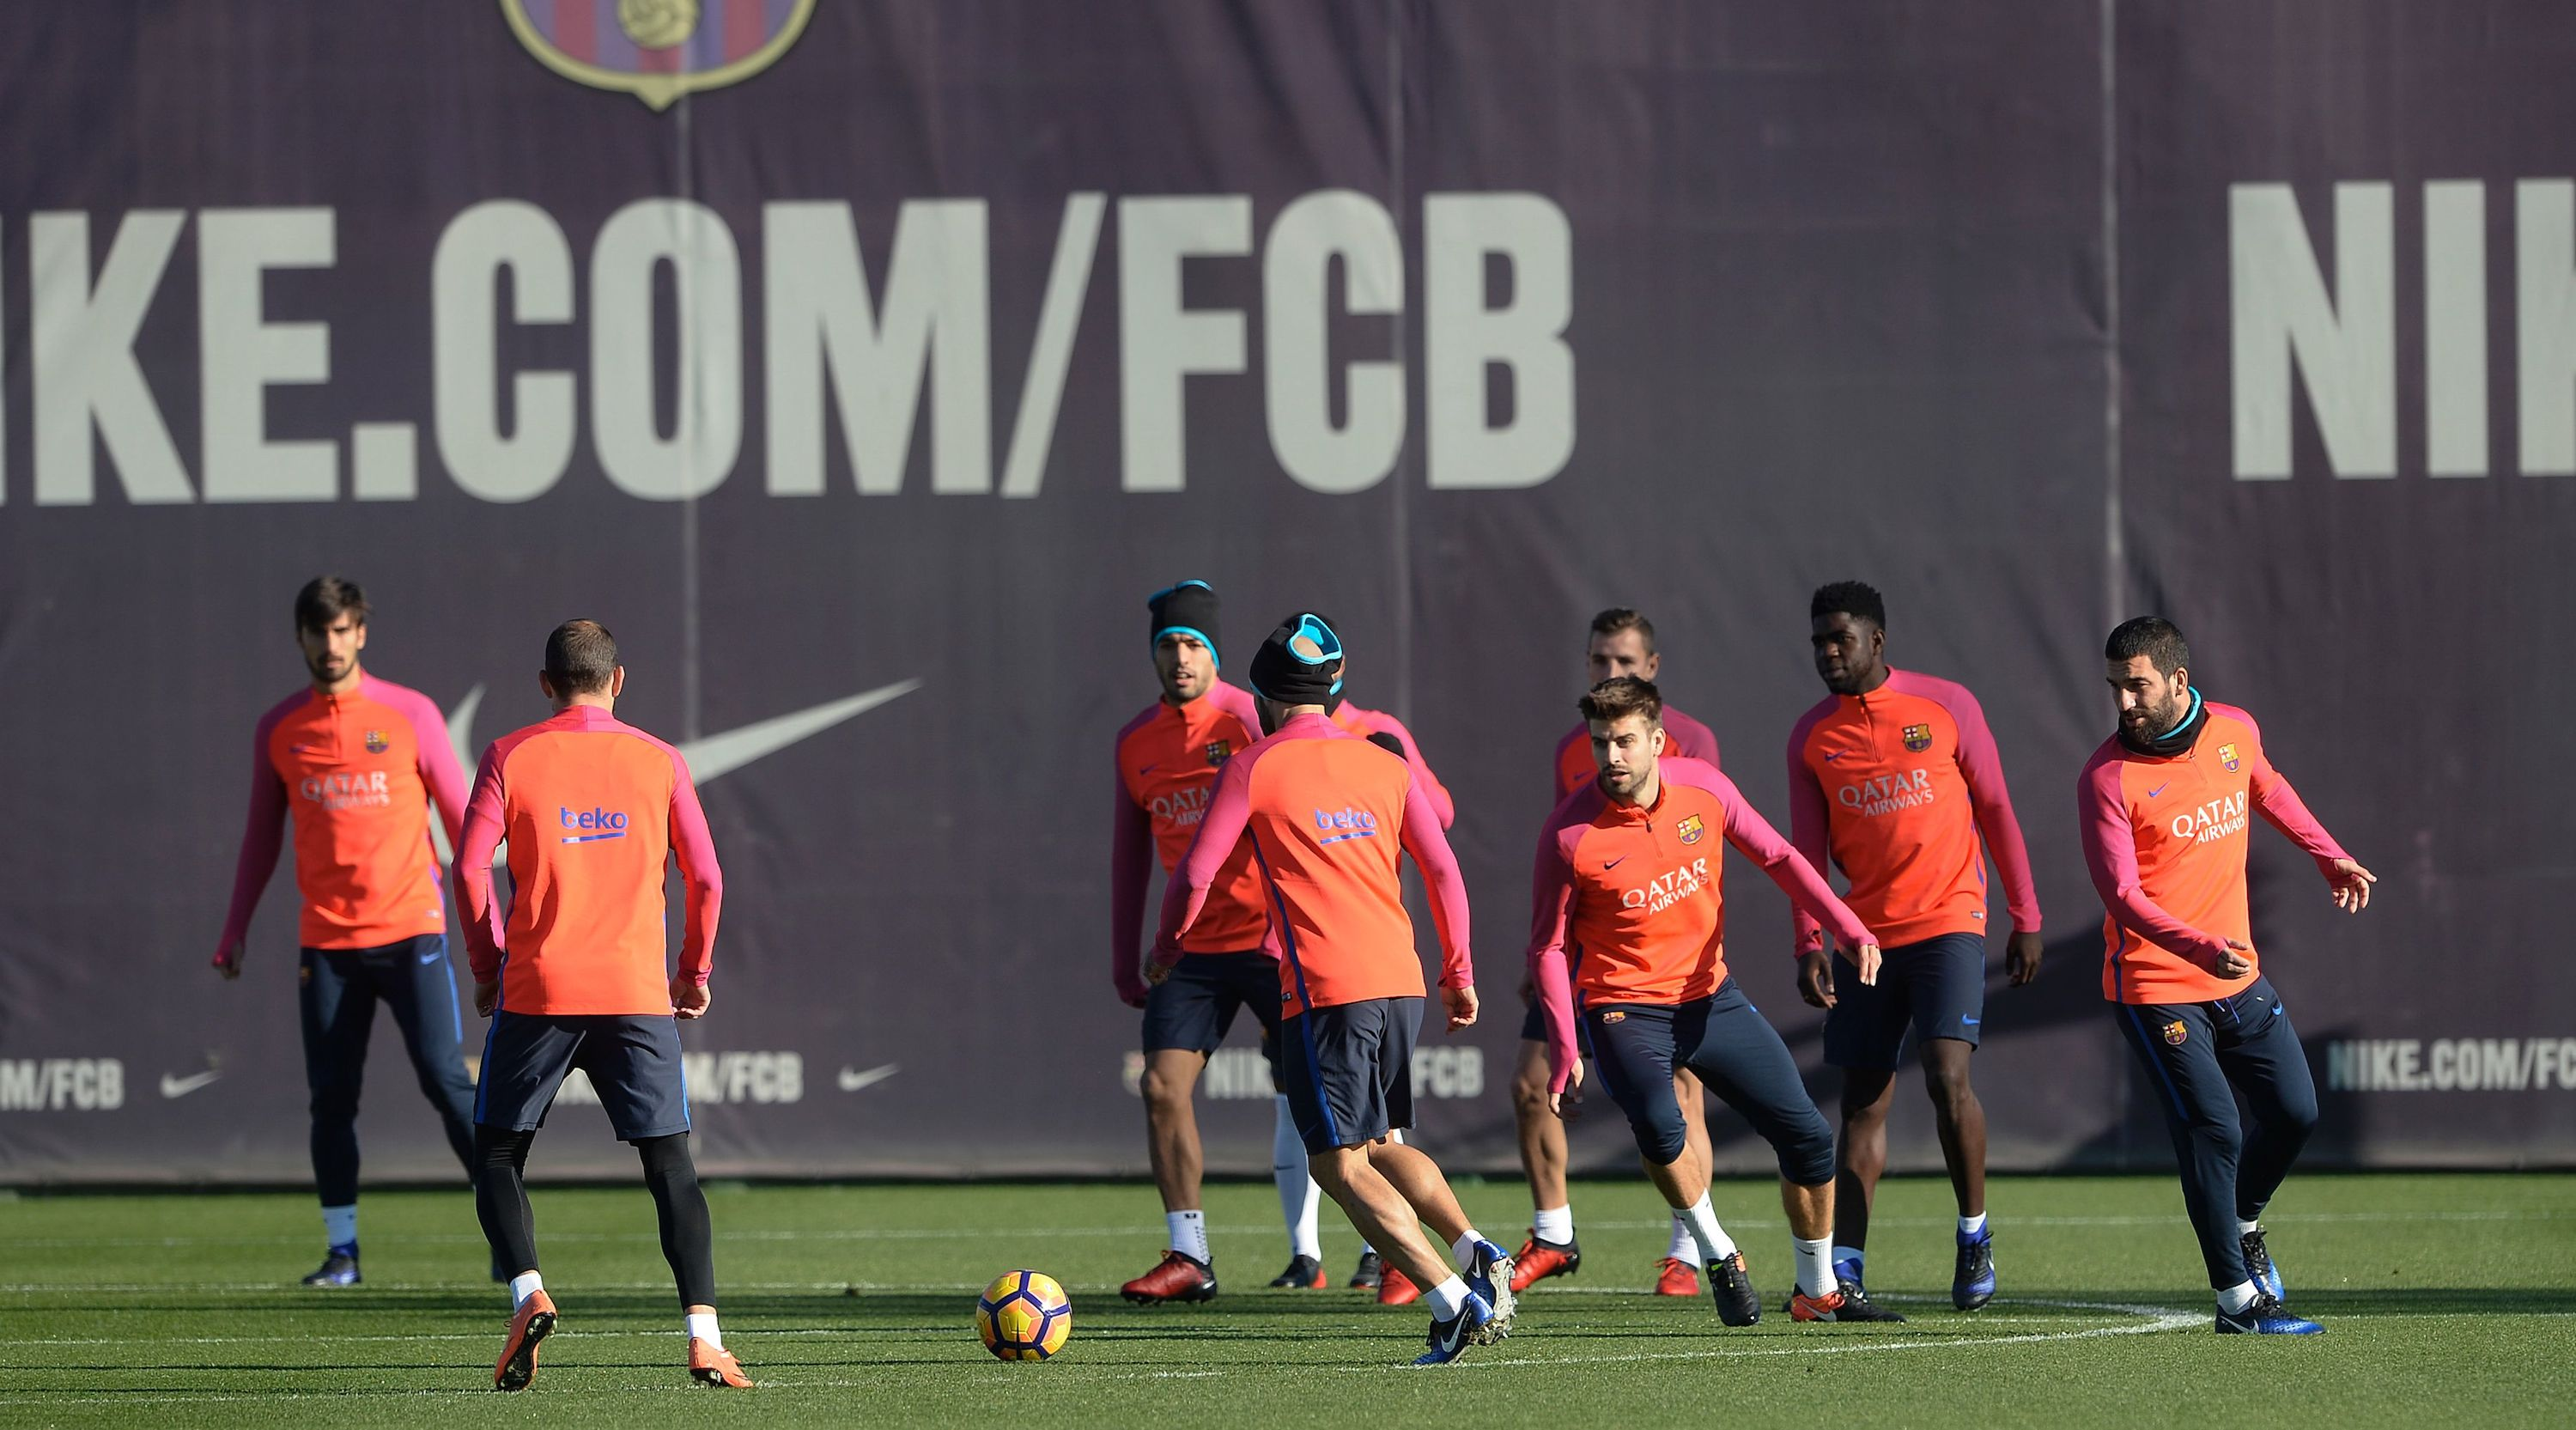 Barcelona's players take part in a training session at the Sports Center FC Barcelona Joan Gamper in Sant Joan Despi, near Barcelona on December 2, 2016 on the eve their Spanish League Clasico football match FC Barcelona vs Real Madrid. / AFP / JOSEP LAGO (Photo credit should read JOSEP LAGO/AFP/Getty Images)